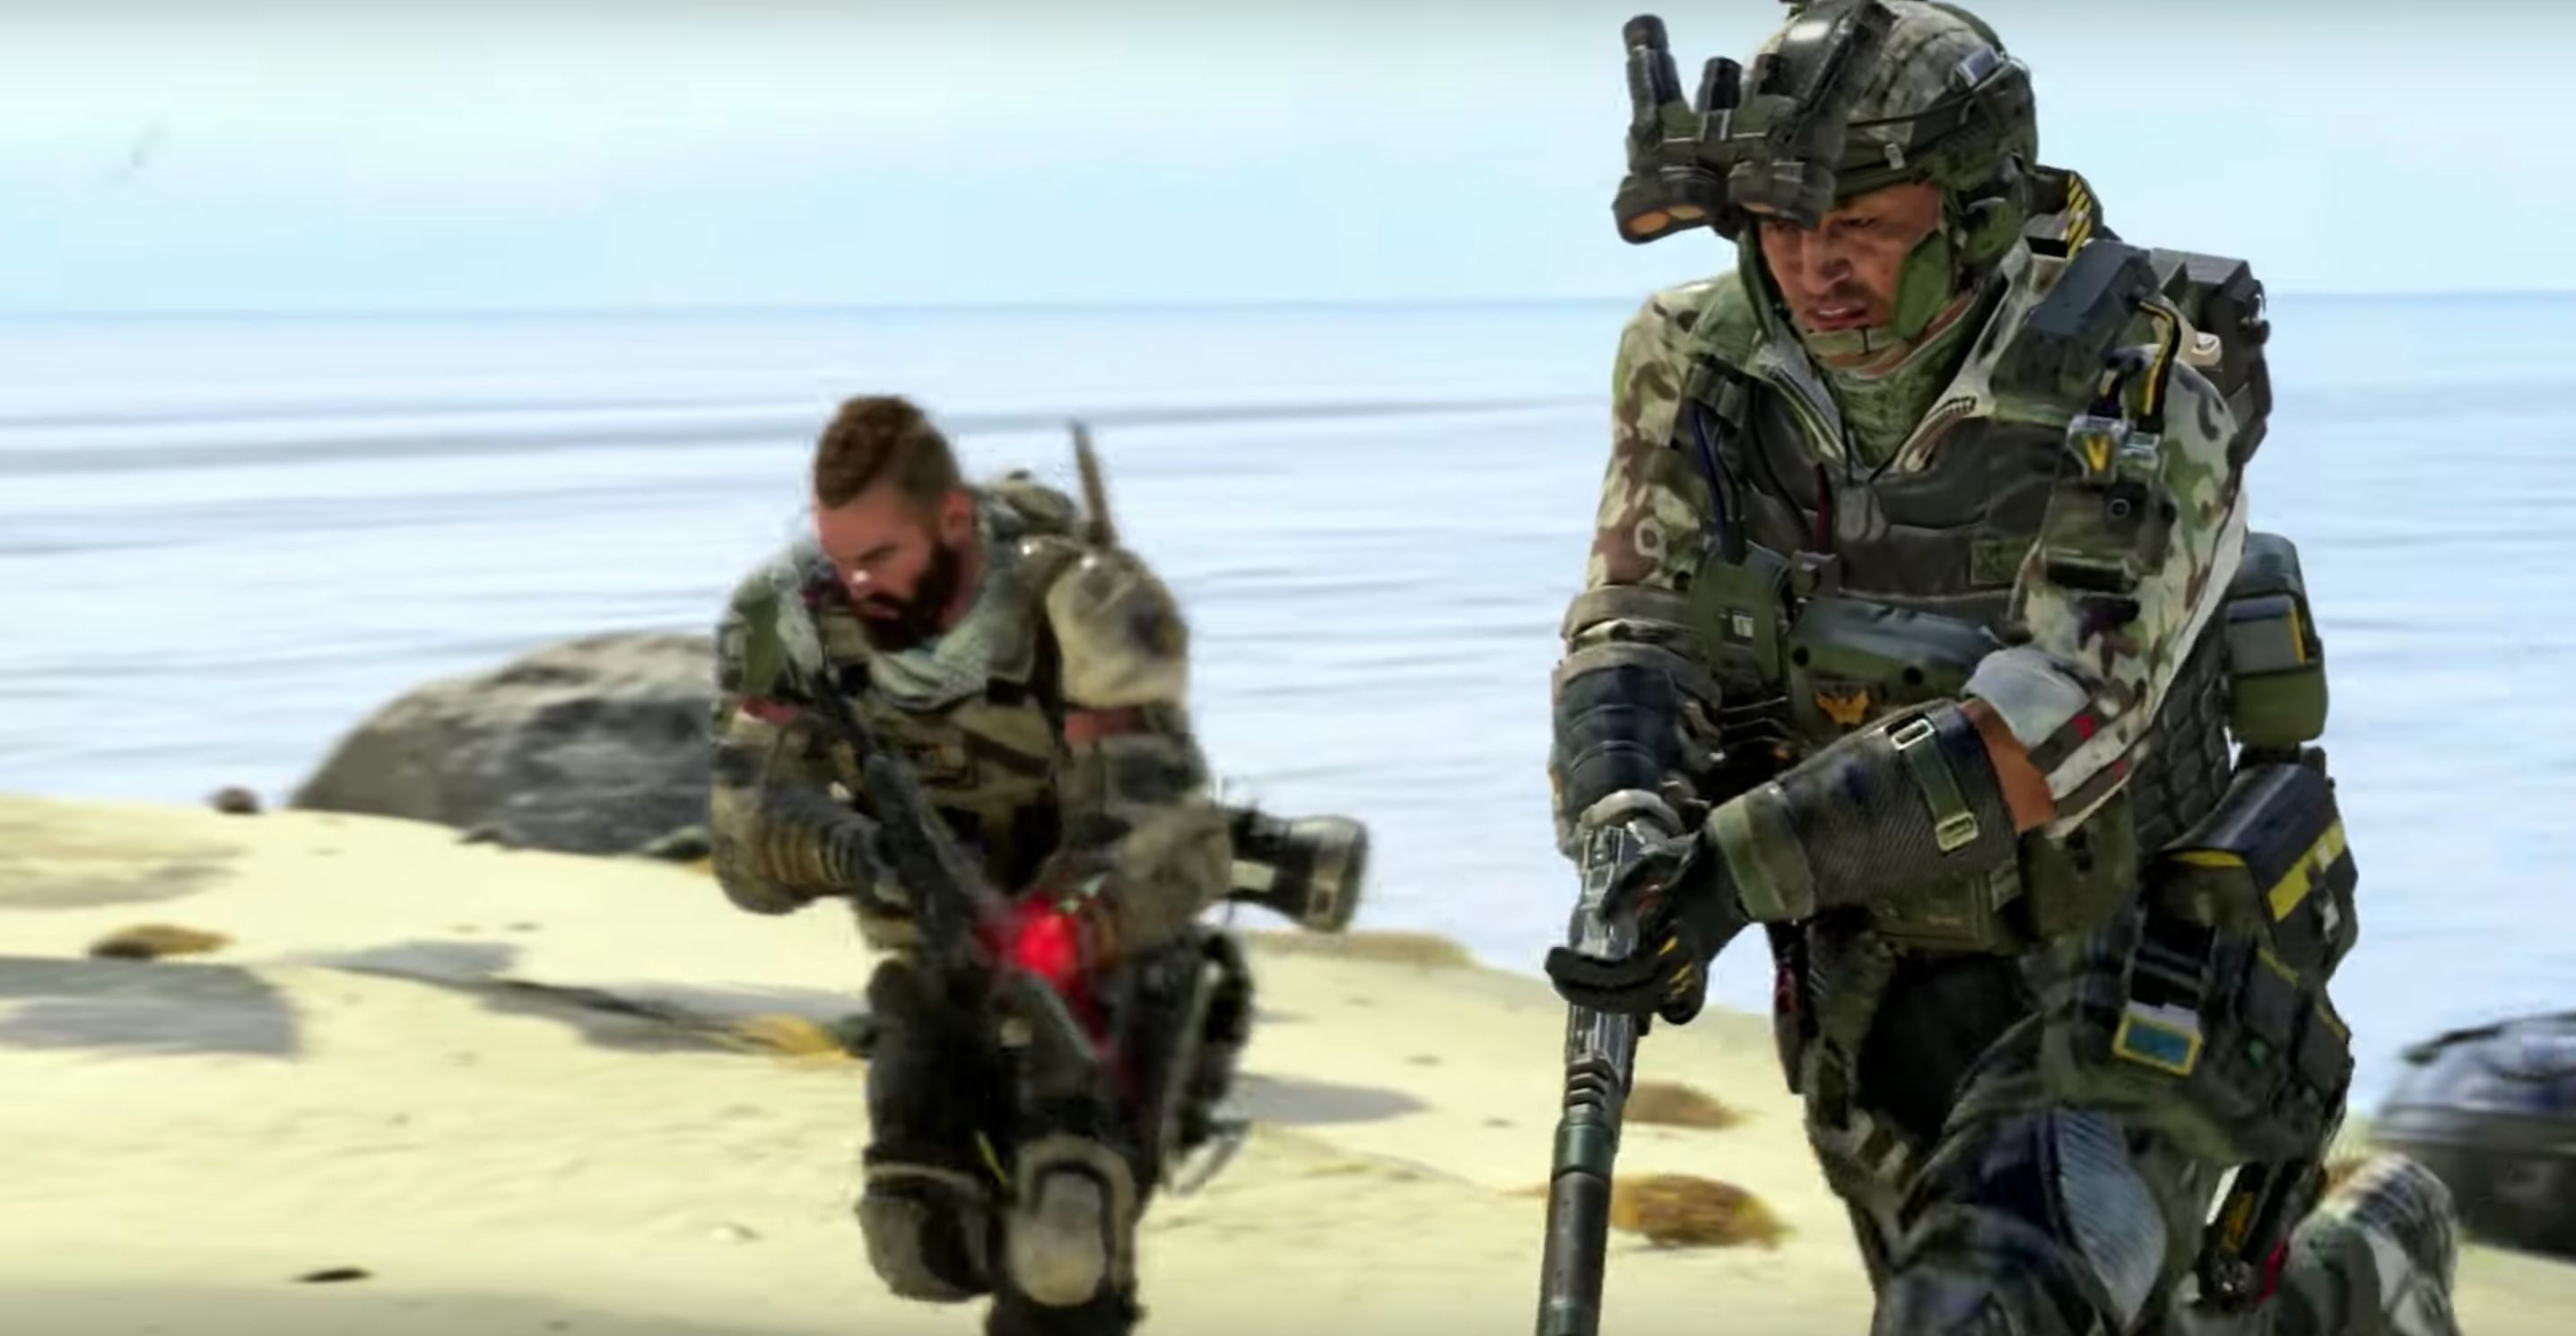 Call Of Duty: Black Ops 4 Has Been Unveiled With A Fortnite-Style Battle Royale